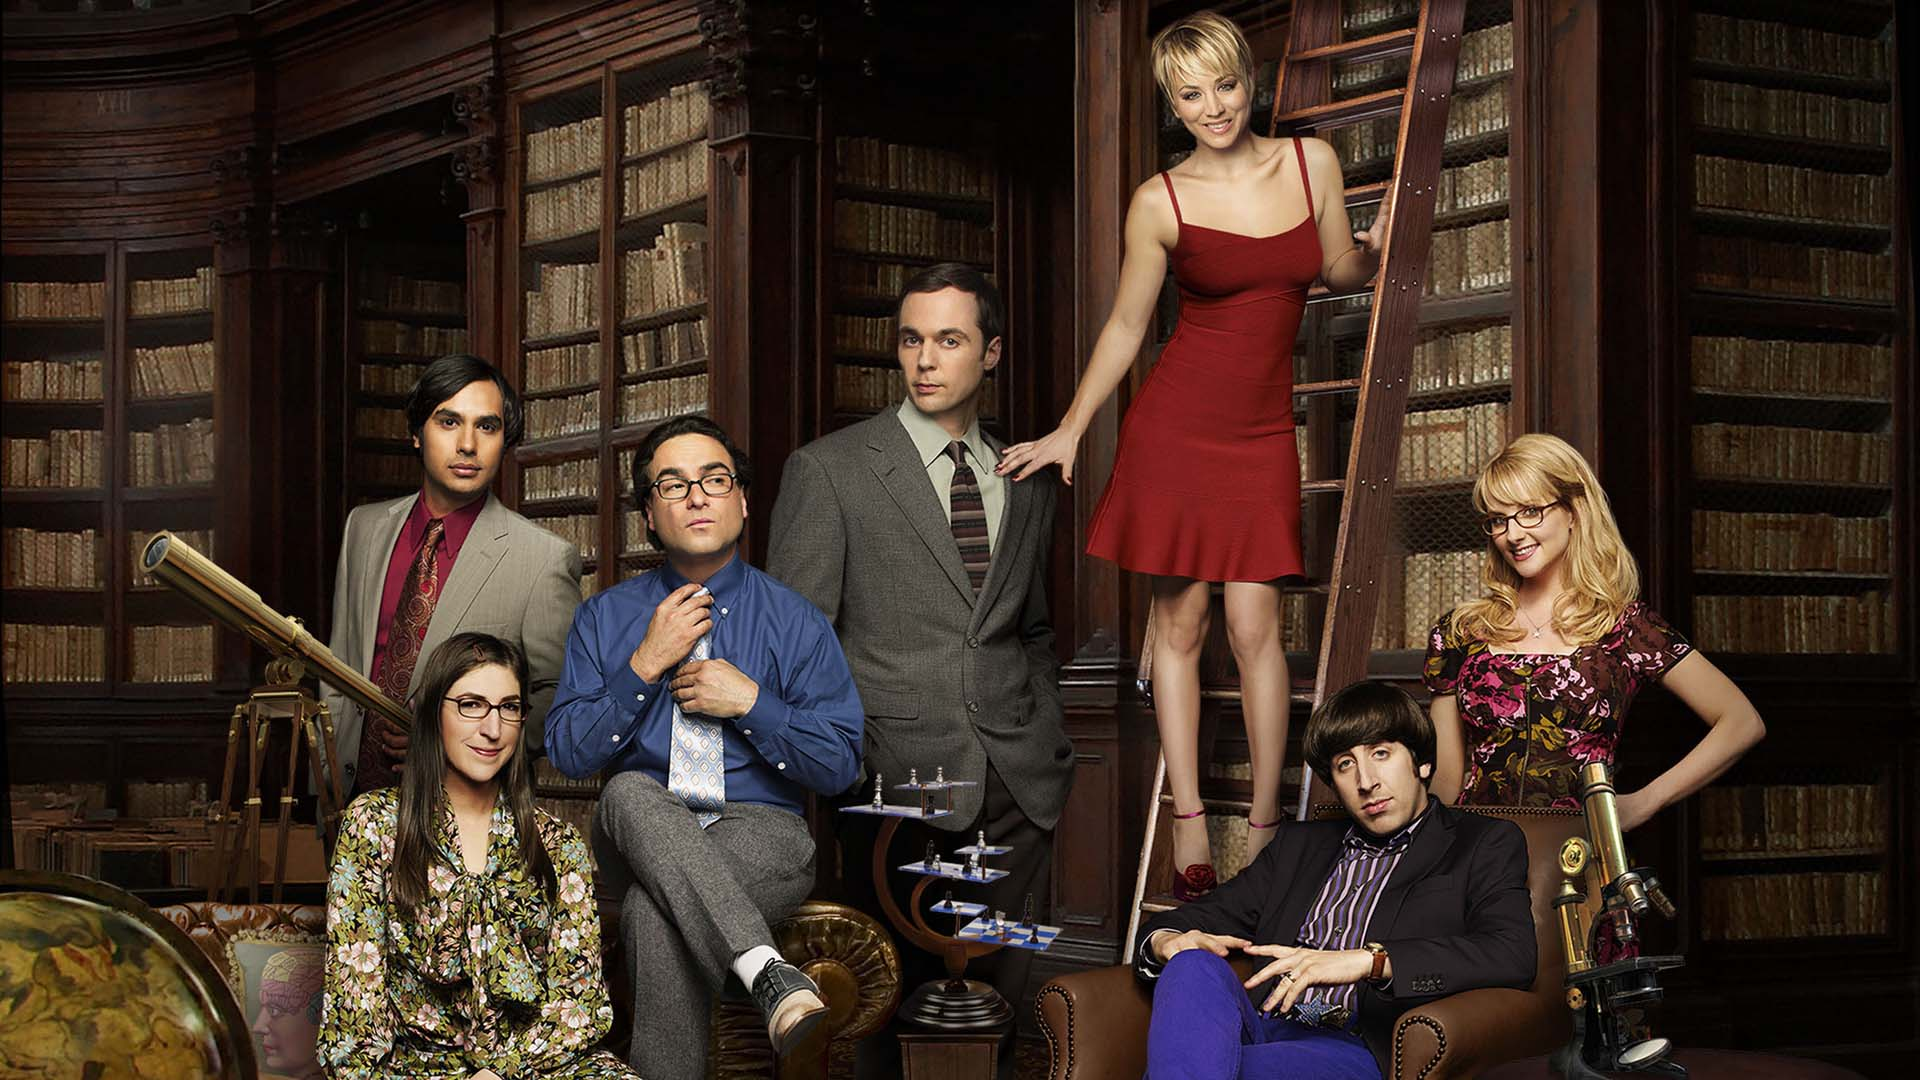 Big Bang Theory Bettwäsche The Big Bang Theory Seriepix